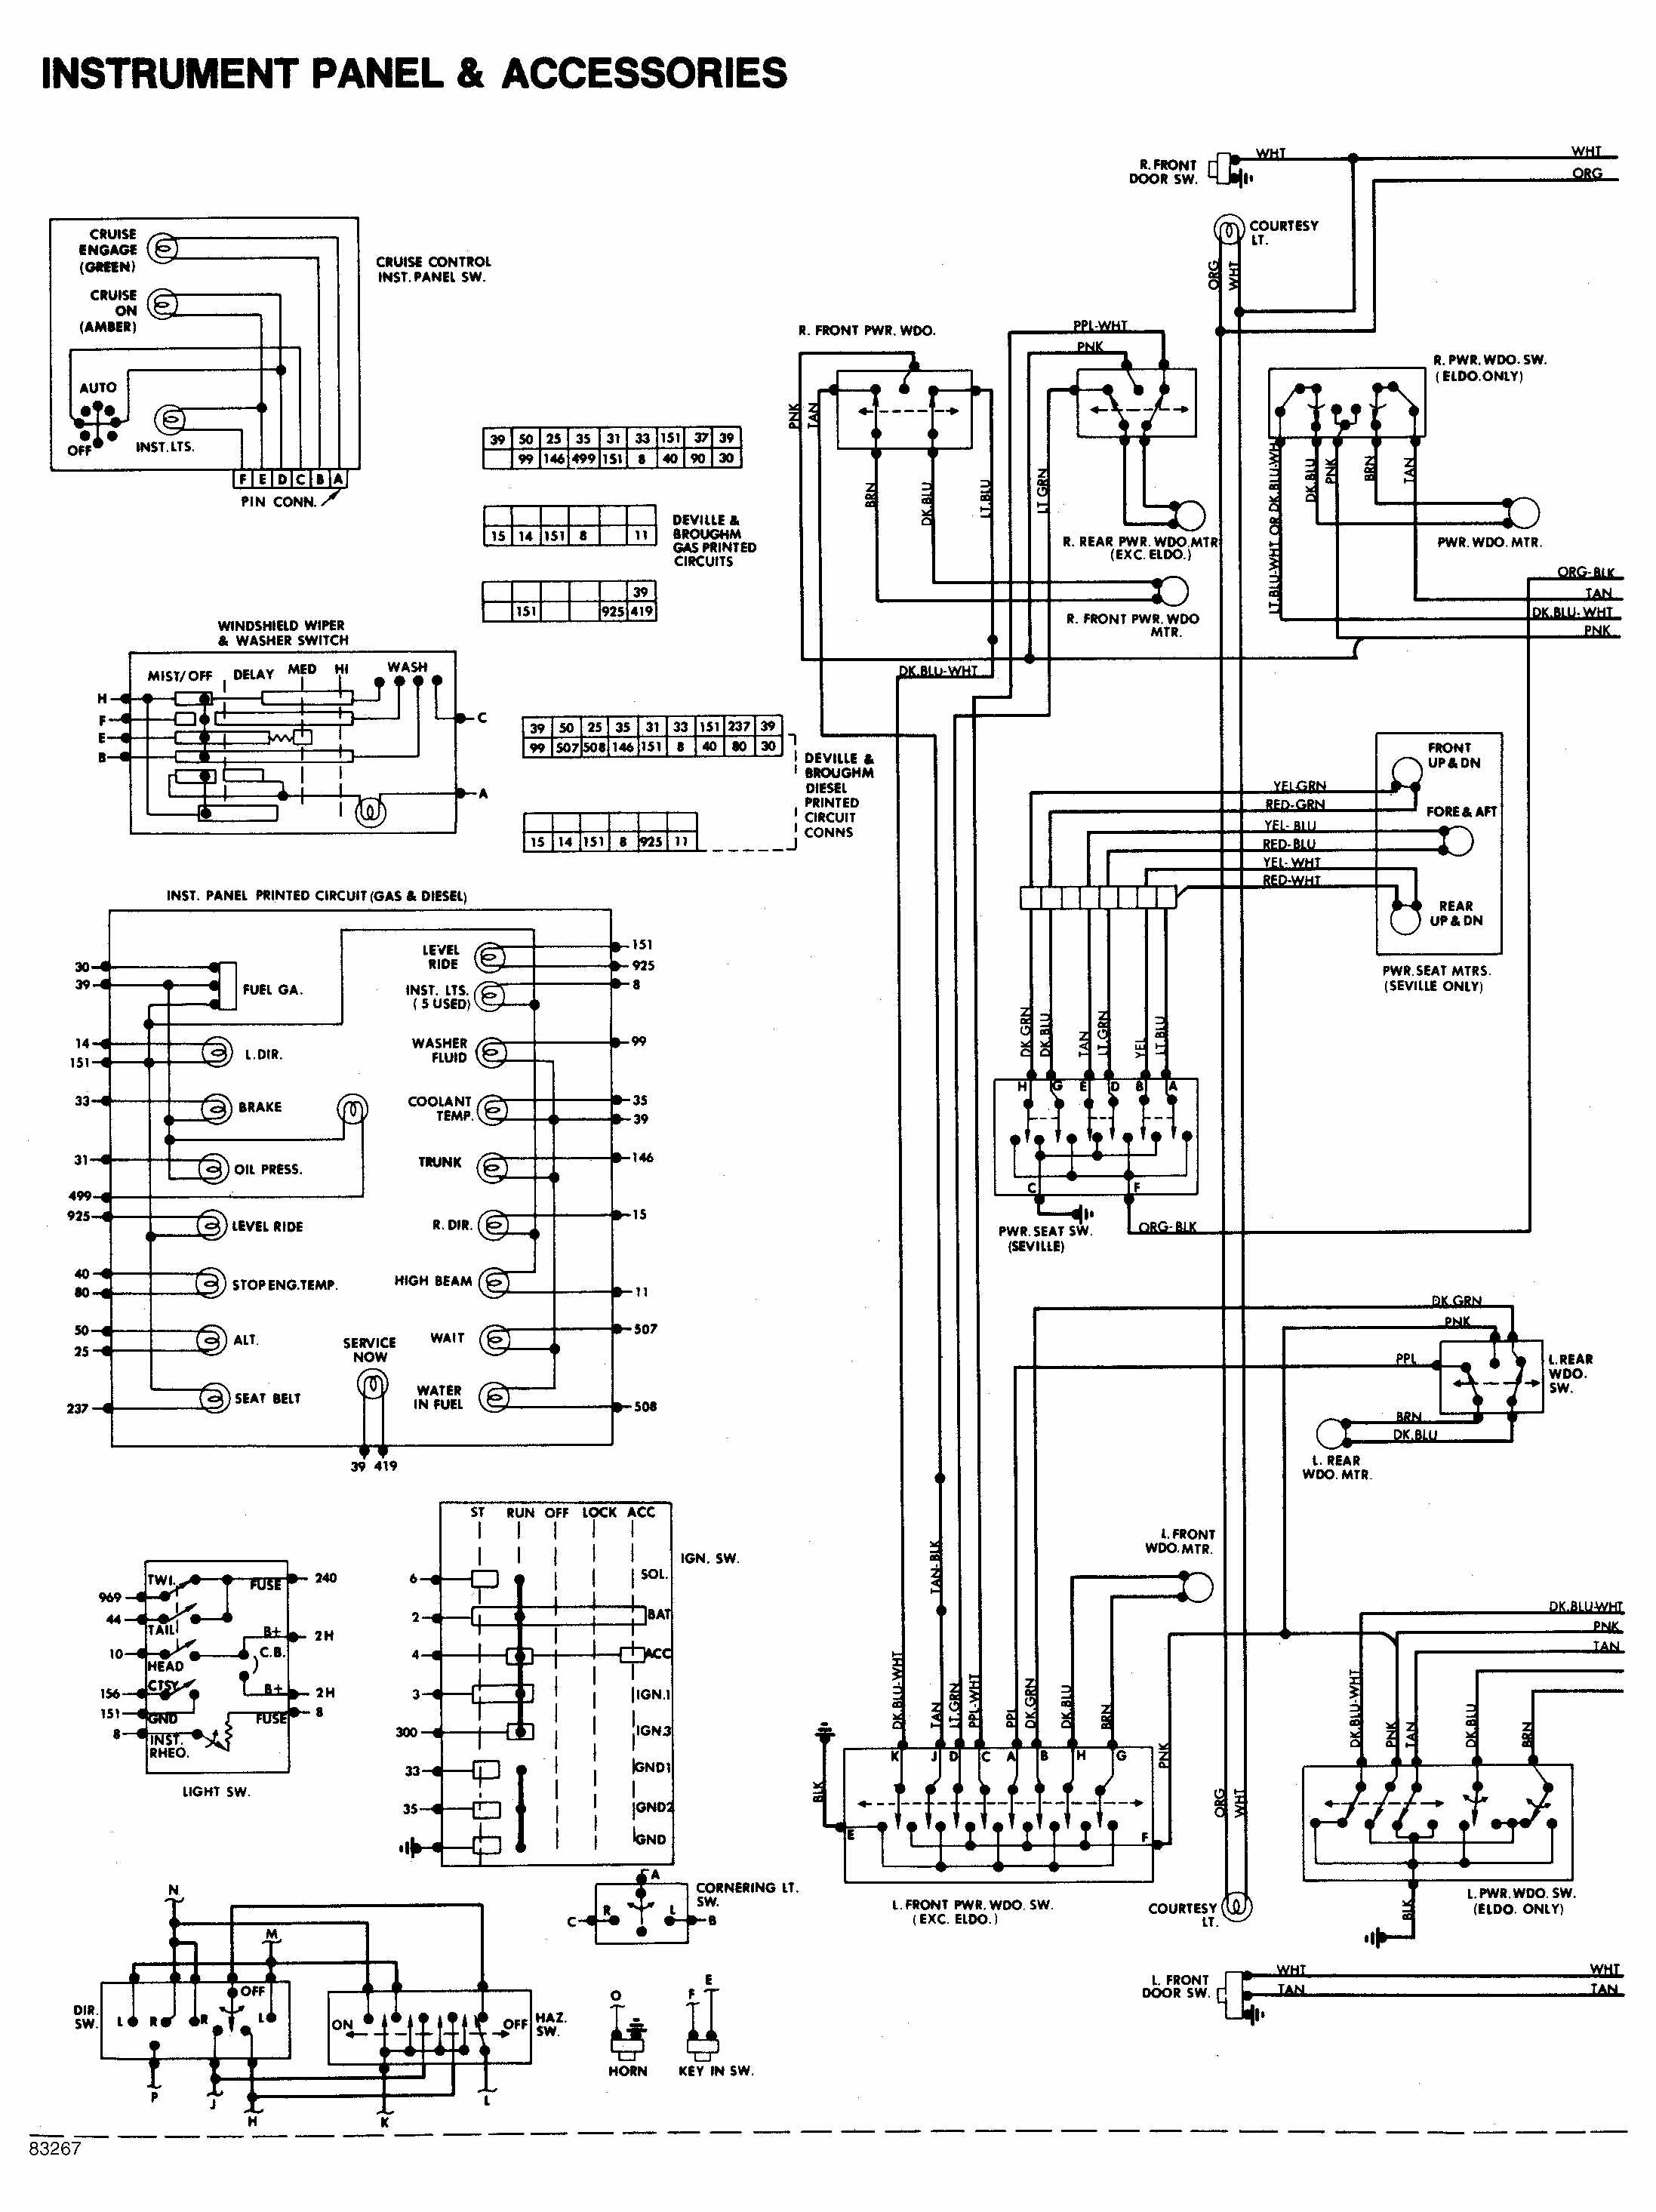 WRG-7916] Kancil Power Window Wiring Diagram on power window parts diagram, 2000 saturn sl1 parts diagram, 1970 cadillac vacuum diagram, mass air flow sensor diagram, 2003 ford f-150 electrical diagram, power window cable diagram, aircraft propeller diagram, car window diagram, fuse diagram, 2004 nissan altima serpentine belt diagram, circuit diagram, power window switch diagram, power window operation, 2006 sebring convertible electrical diagram, electric window switch diagram, power window assembly, 2004 lincoln navigator air suspension diagram, power steering diagram, ford power window diagram, power window remote control,